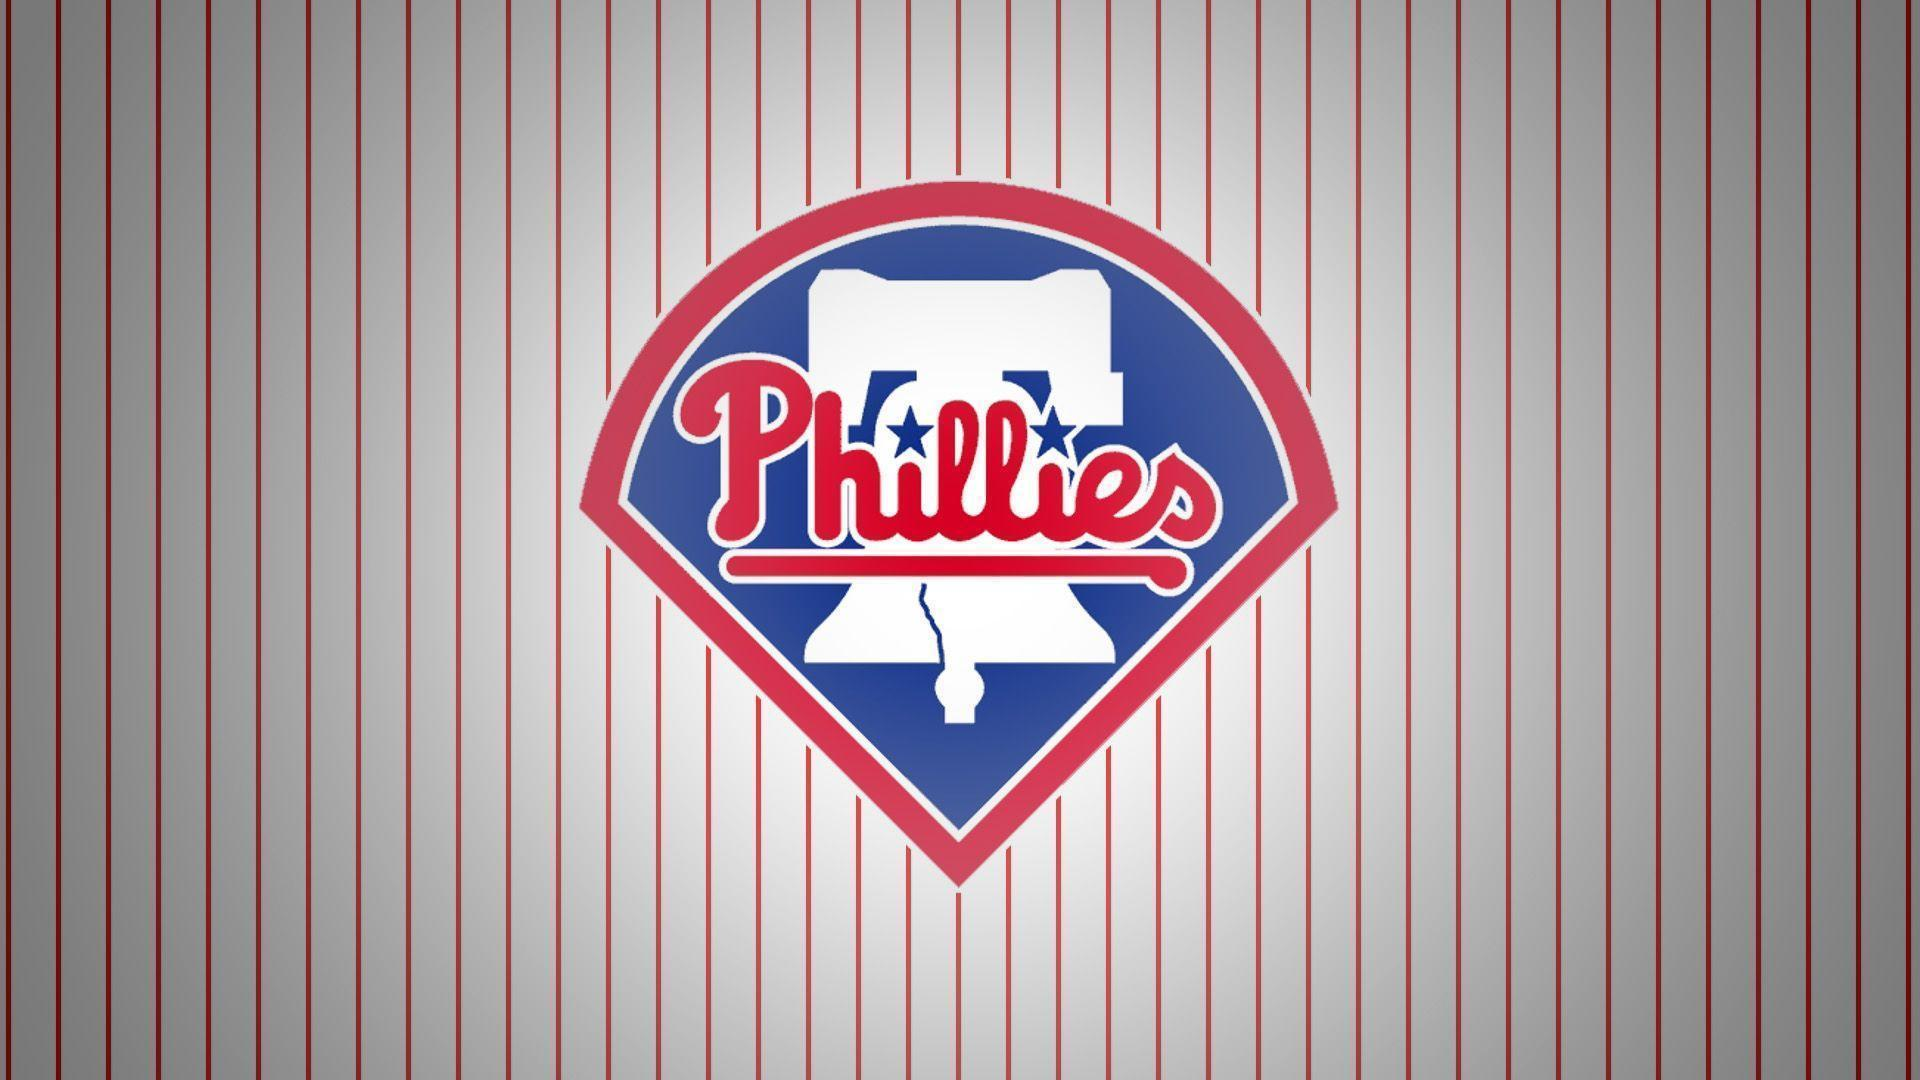 Philadelphia Phillies Wallpapers | HD Wallpapers Early